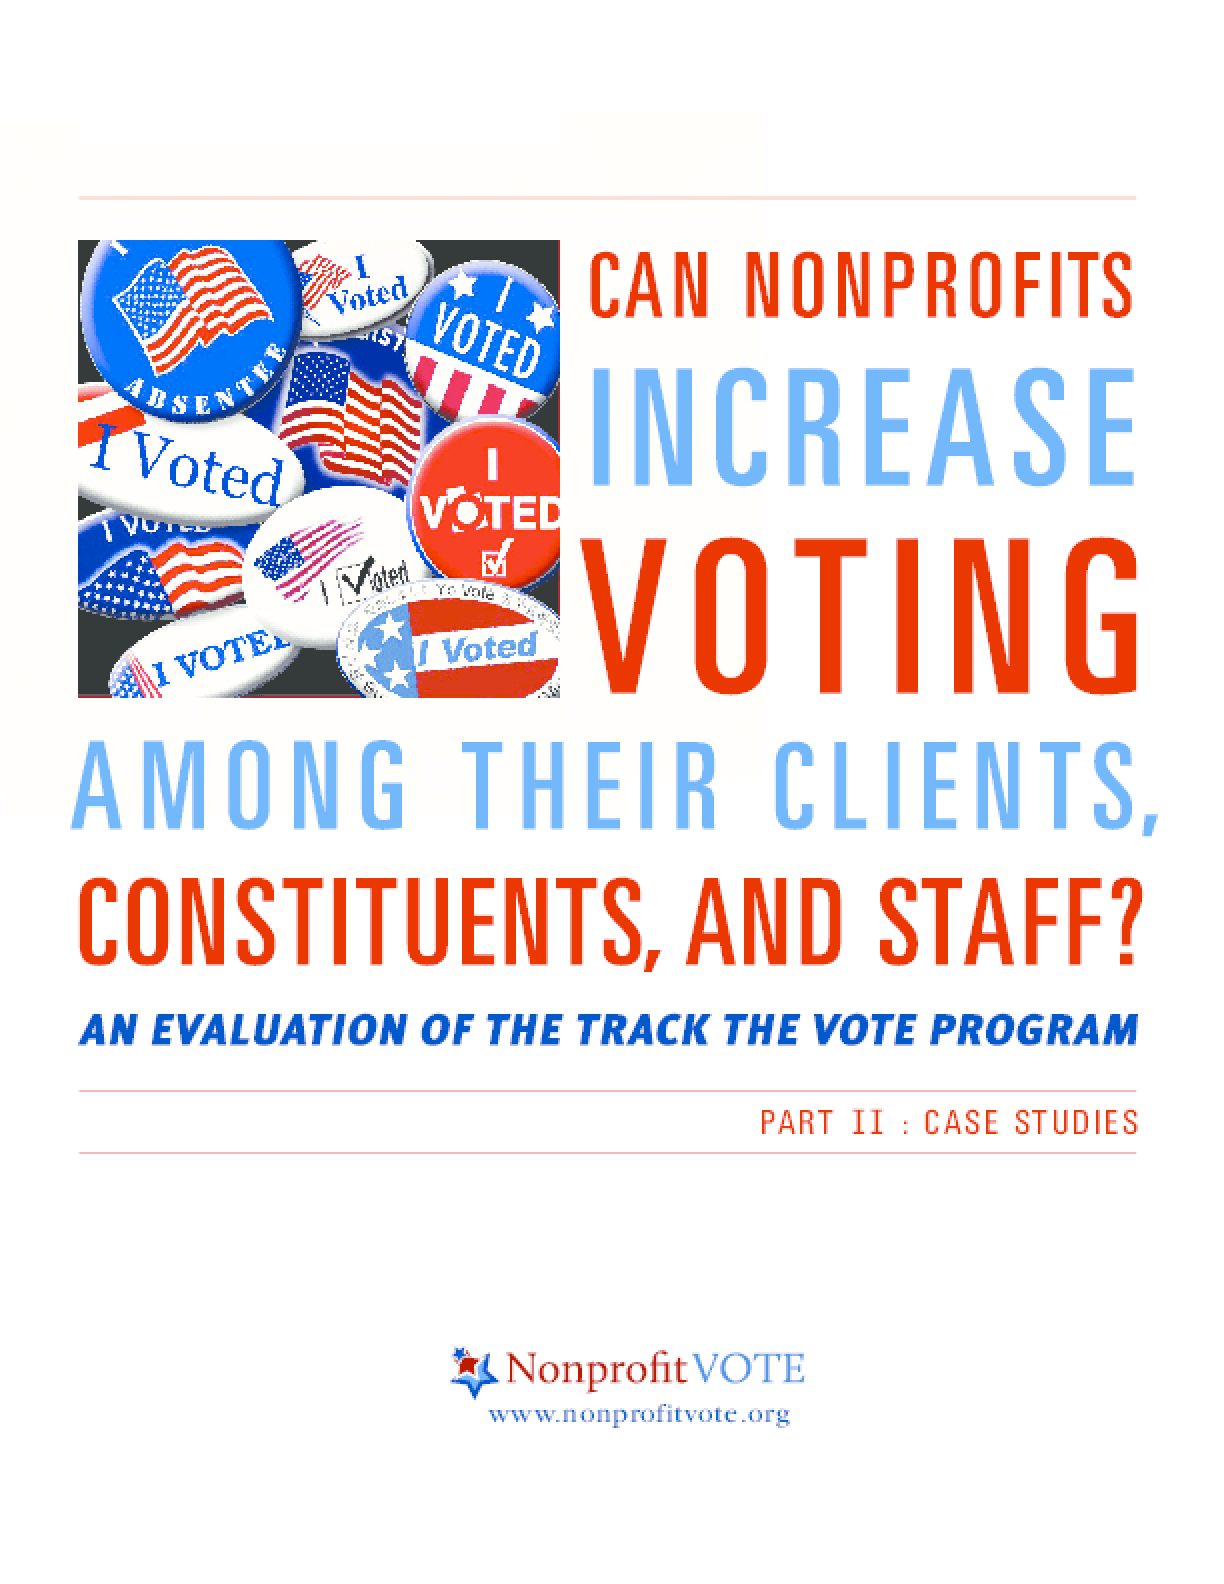 Can Nonprofits Increase Voting Among Their Clients, Constituents and Staff?: An Evaluation of the Track the Vote Progrram - Part II: Case Studies